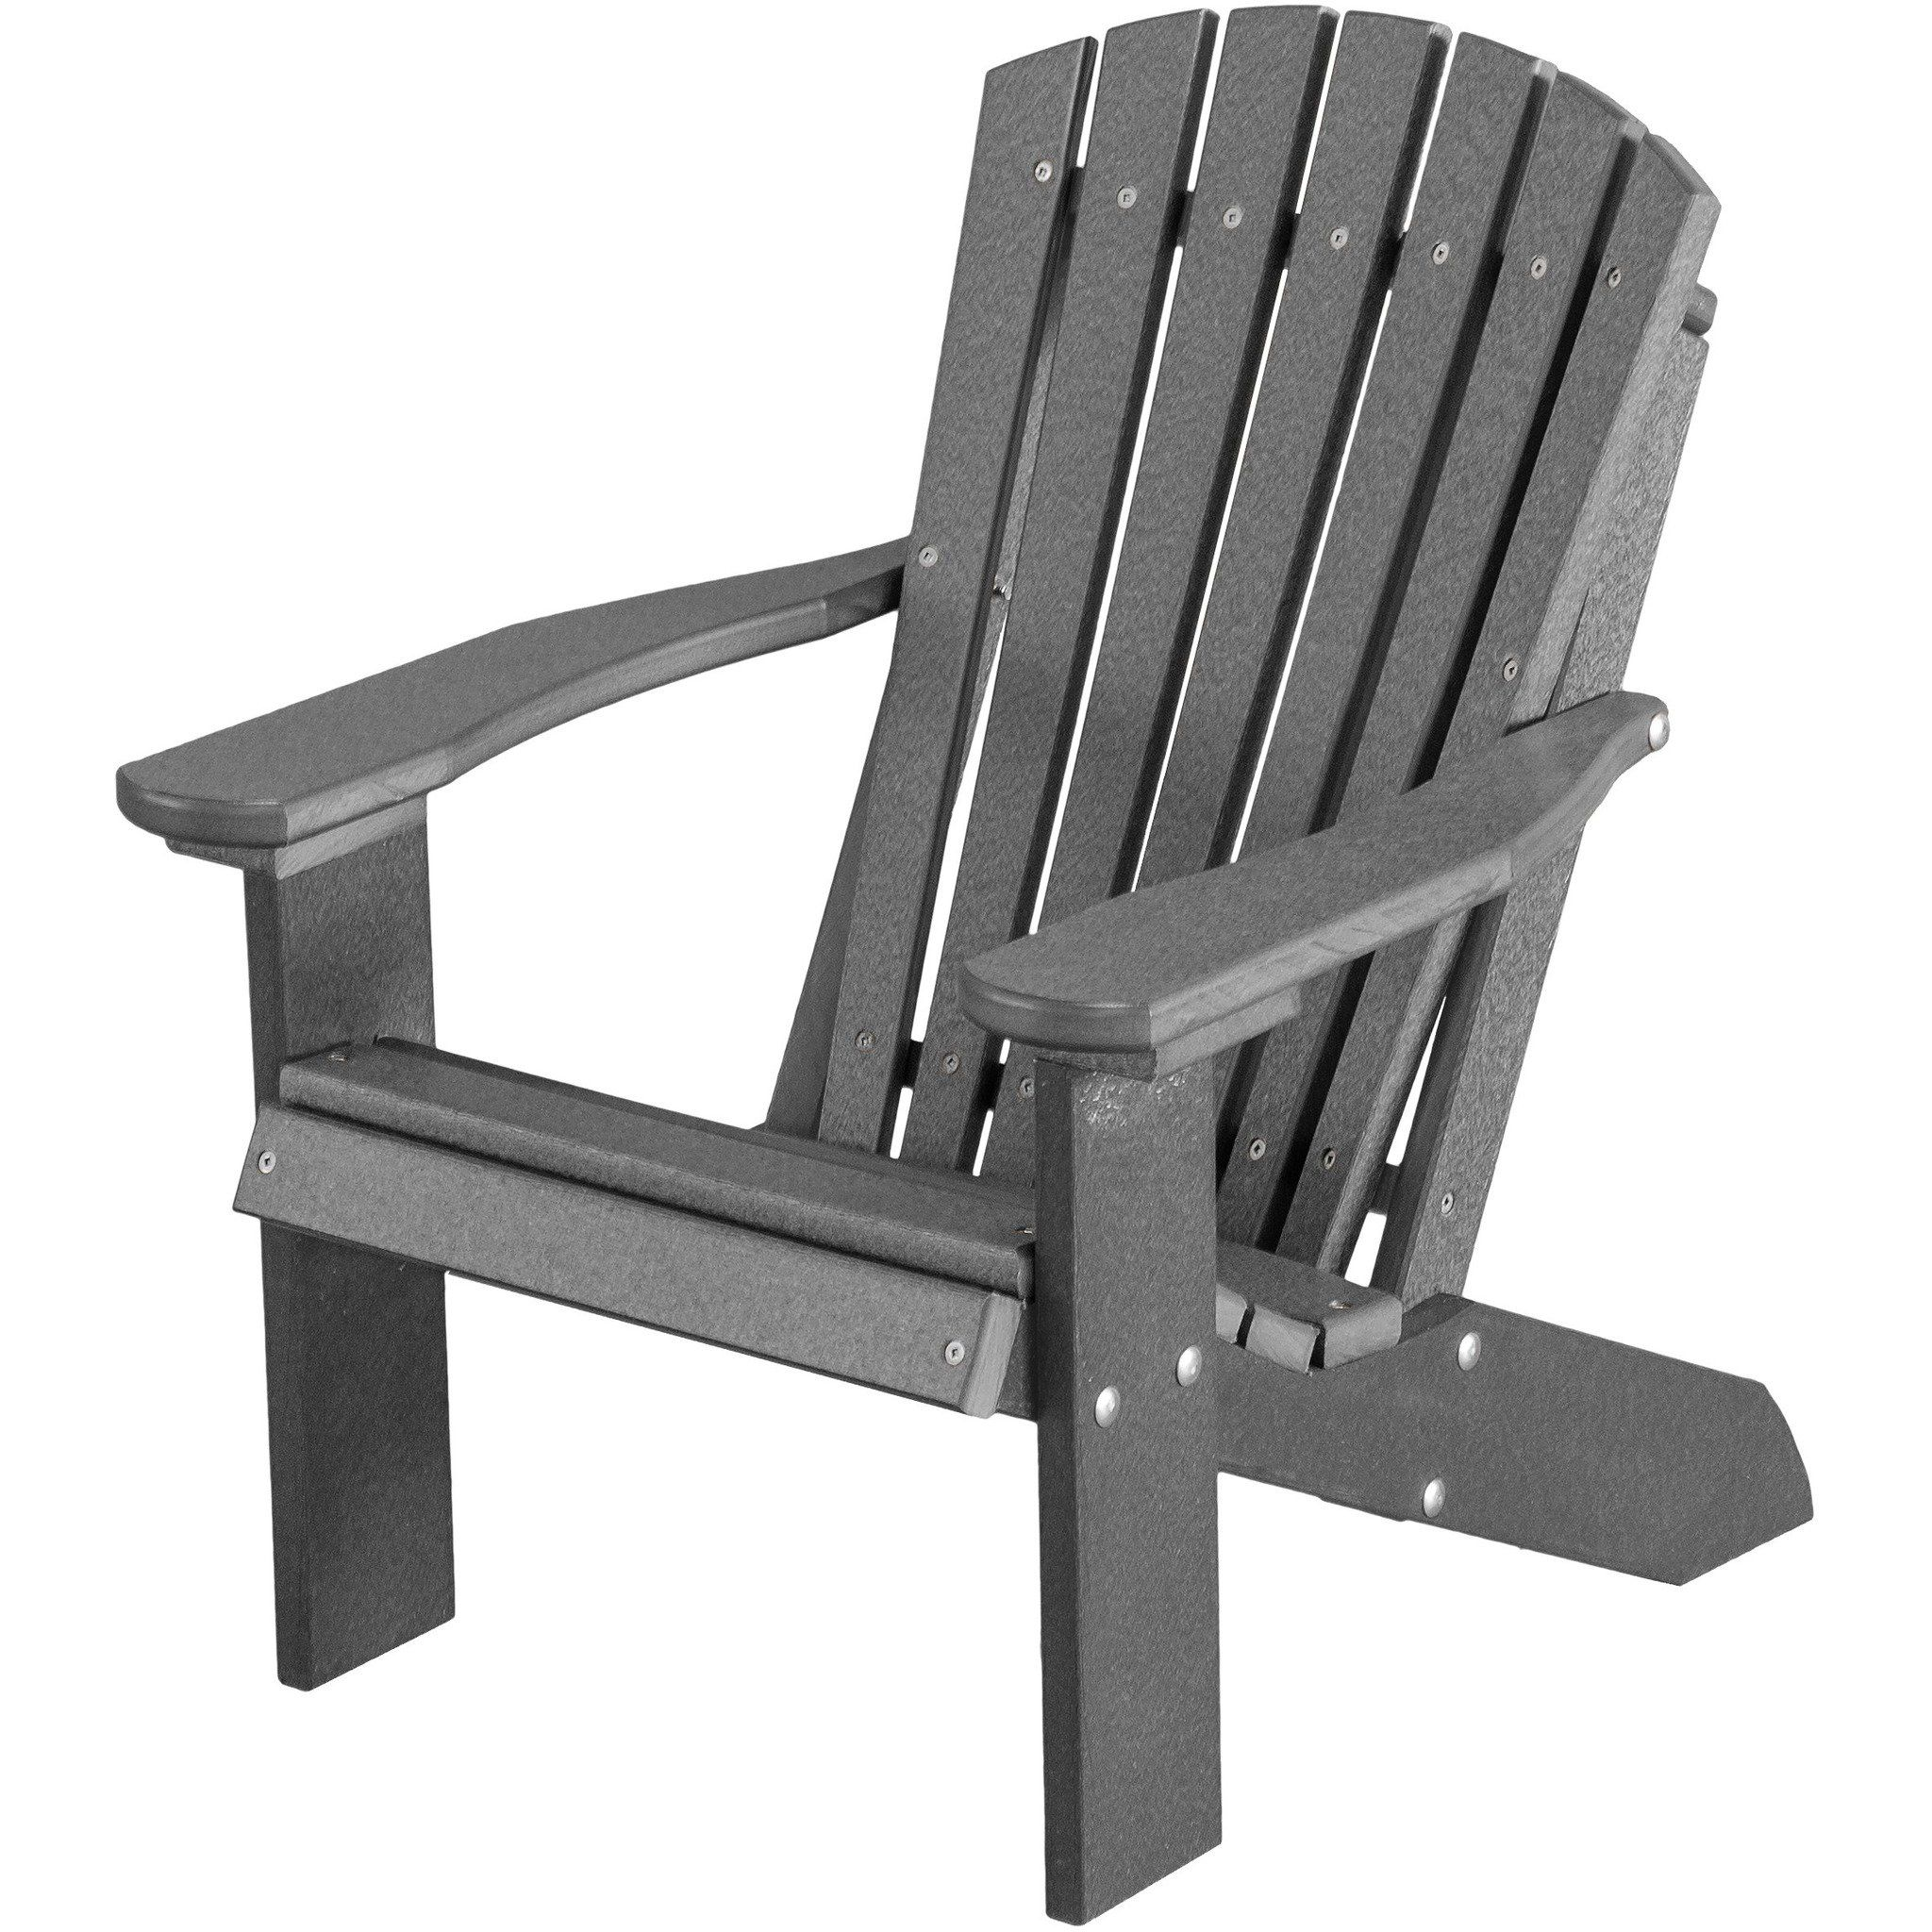 Wildridge Outdoor Recycled Plastic Children S Adirondack Chair Lead Time To Ship 7 Business Days Resin Adirondack Chairs Adirondack Chair Wood Adirondack Chairs